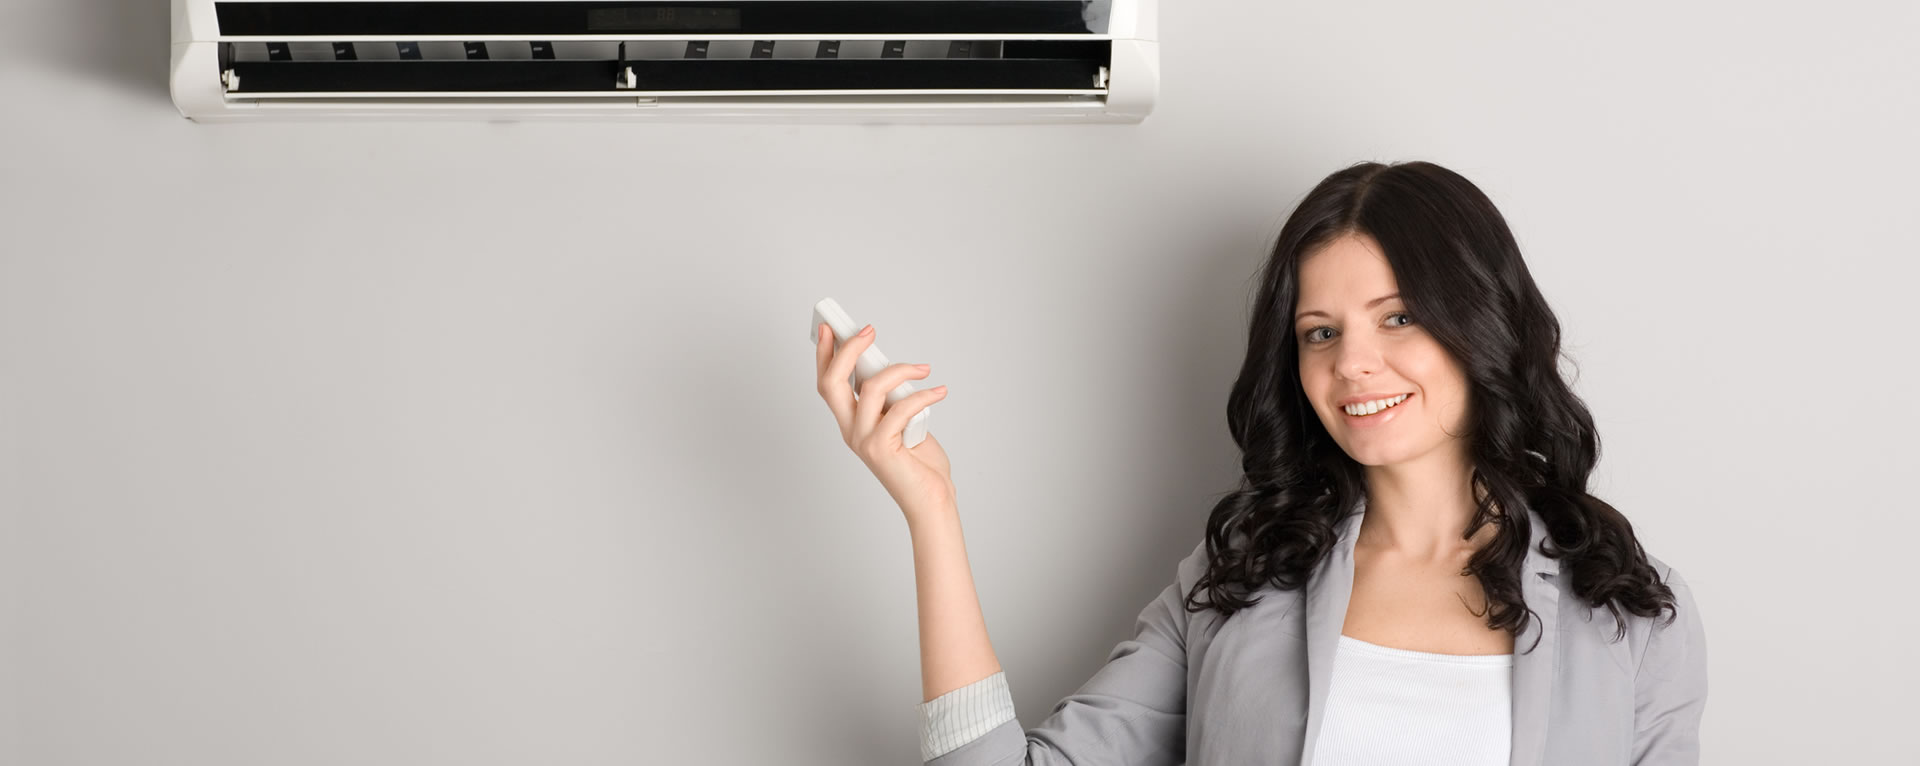 we can control the temperature of our environment with the invention of air-condition